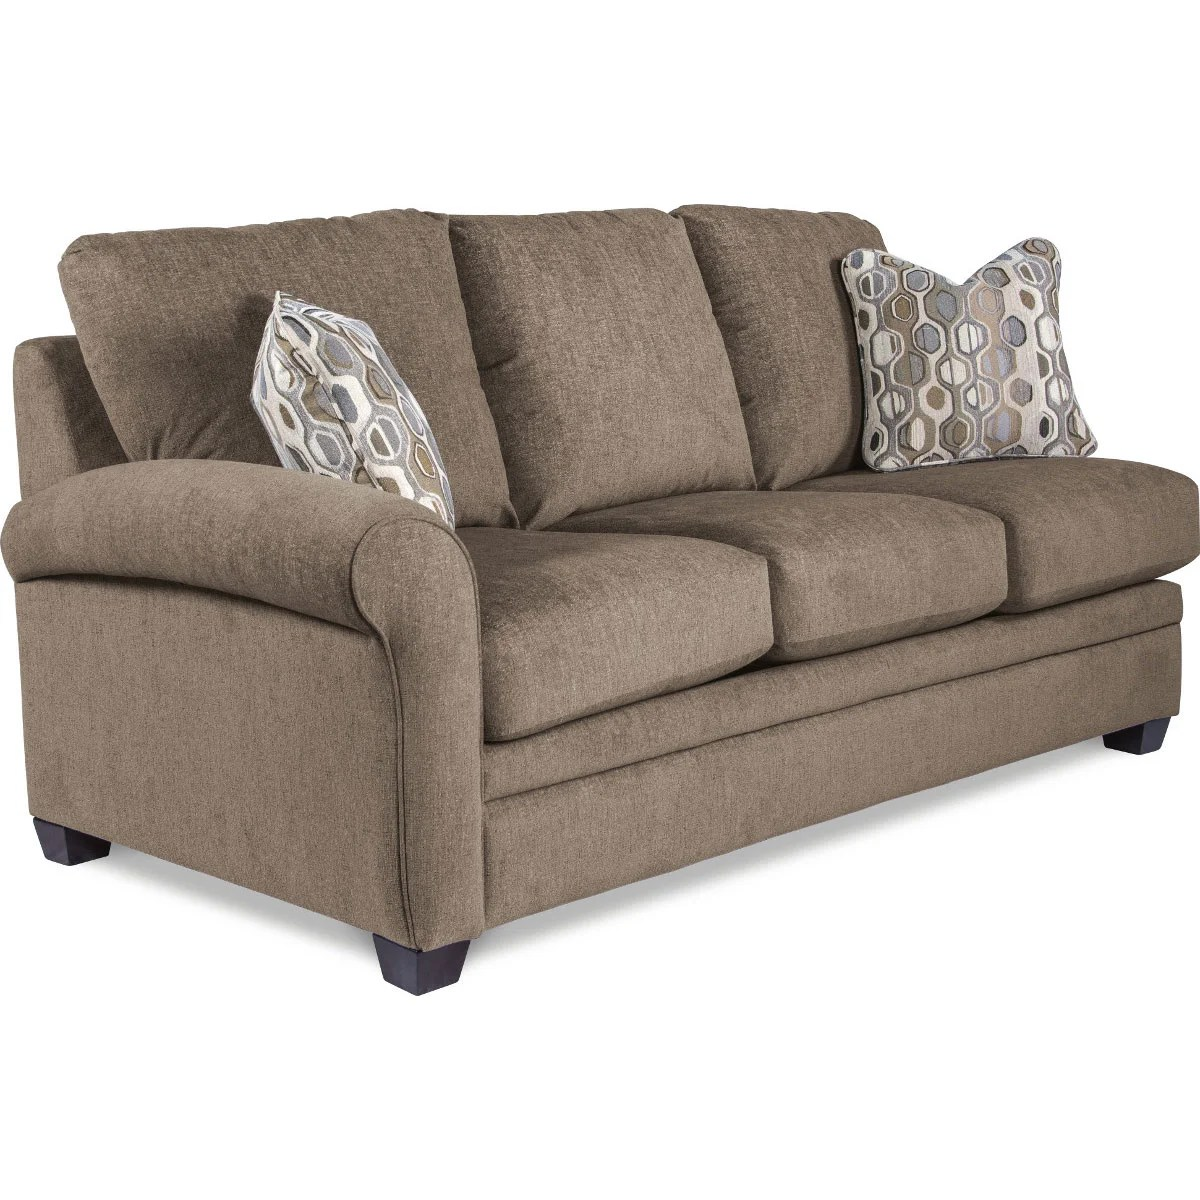 right arm sleeper sofa modern fabric sofas sydney natalie premier sitting queen sleep